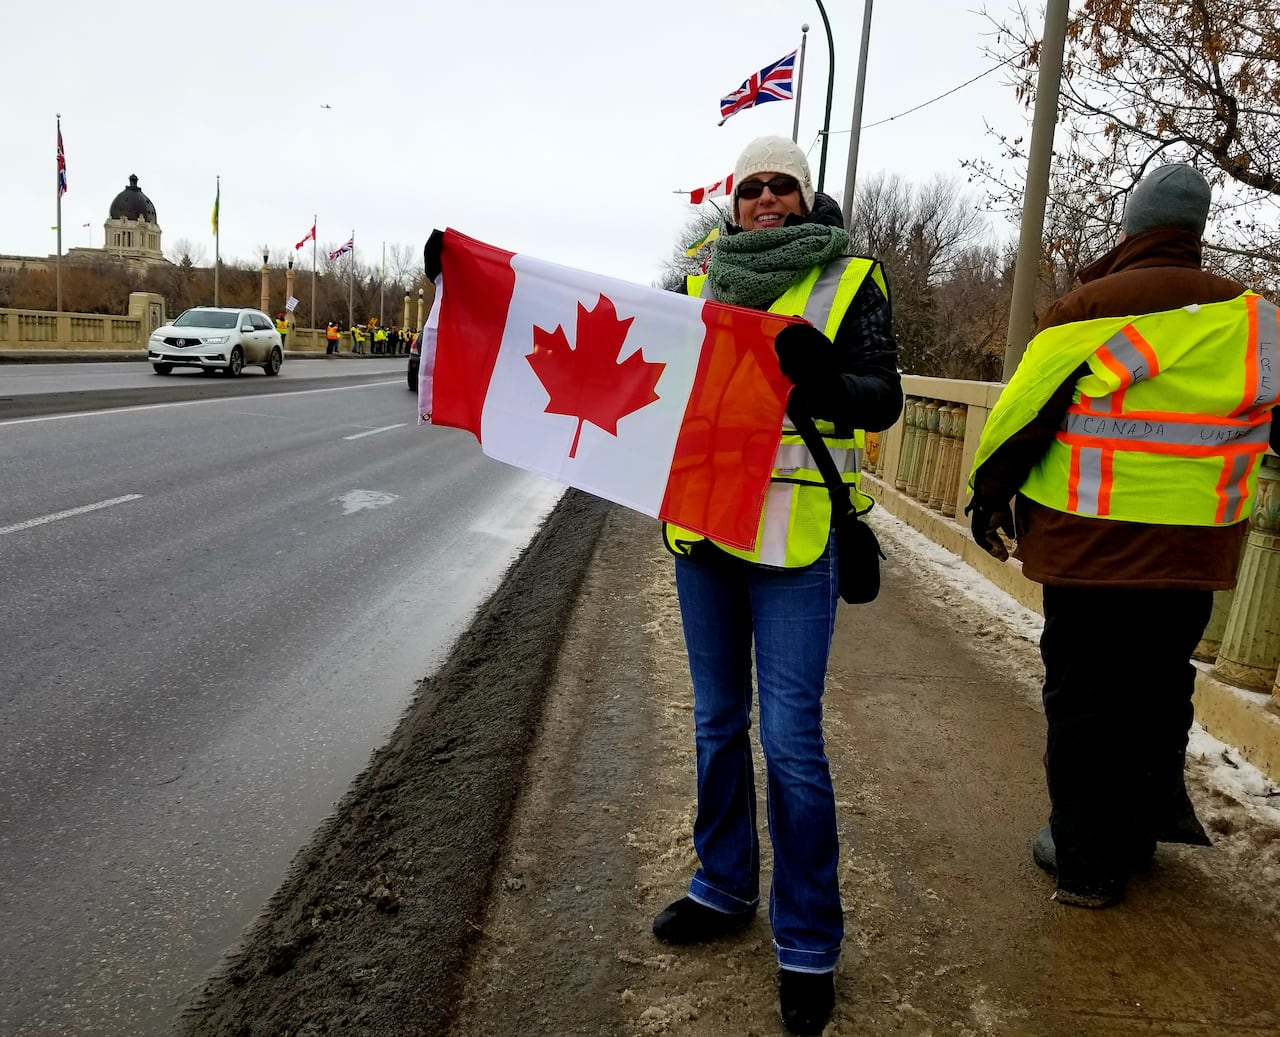 Regina yellow vest protesters 'standing up for Canada